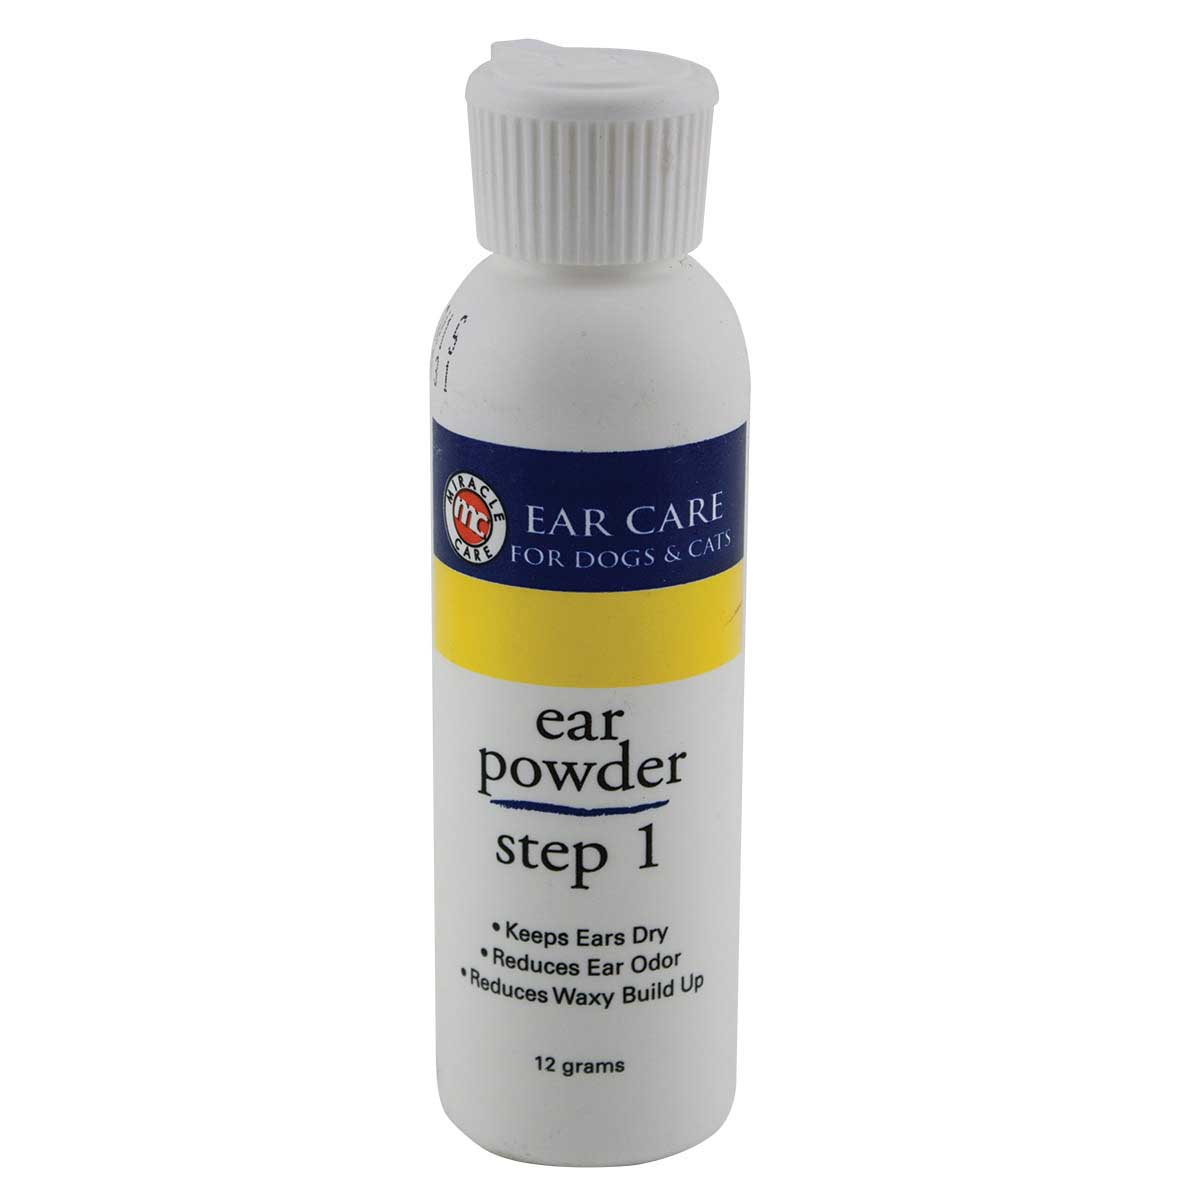 Miracle Care Ear Care Ear Powder For Dogs & Cats Keeps Ears Dry and Reduces Odor at Ryan's Pet Supplies